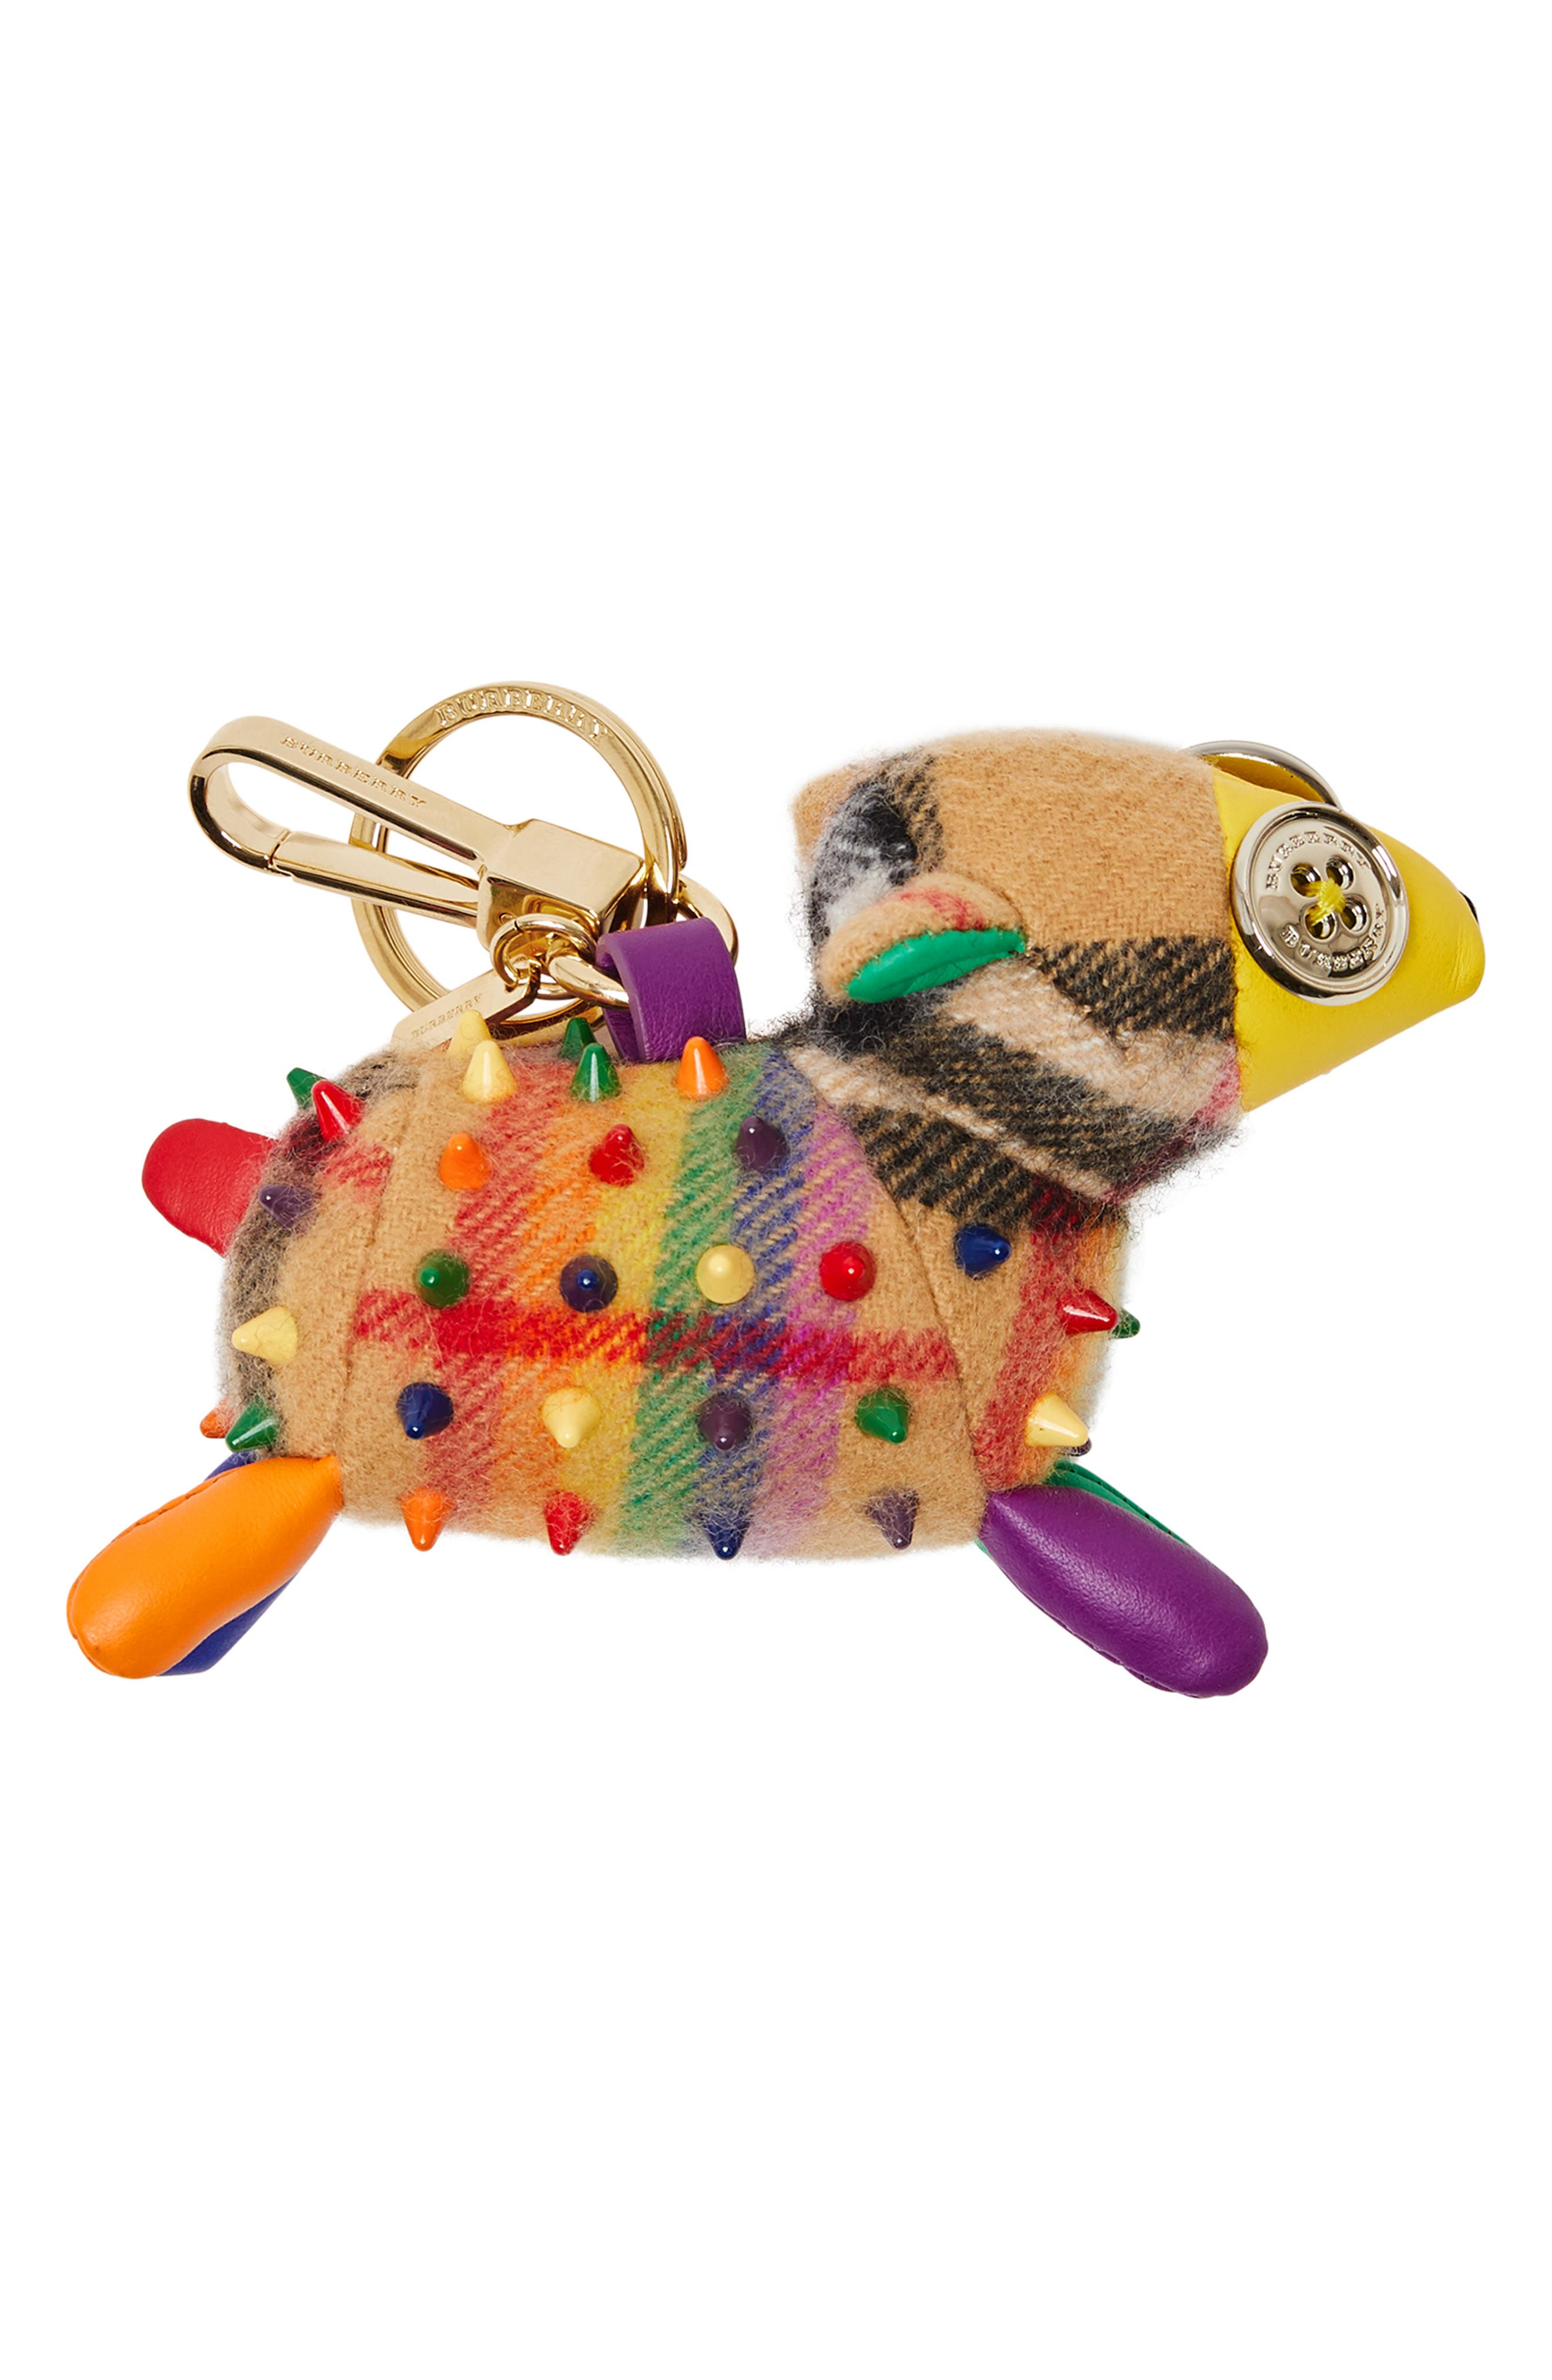 BURBERRY,                             Wendy the Sheep Rainbow Check Cashmere Bag Charm,                             Main thumbnail 1, color,                             250